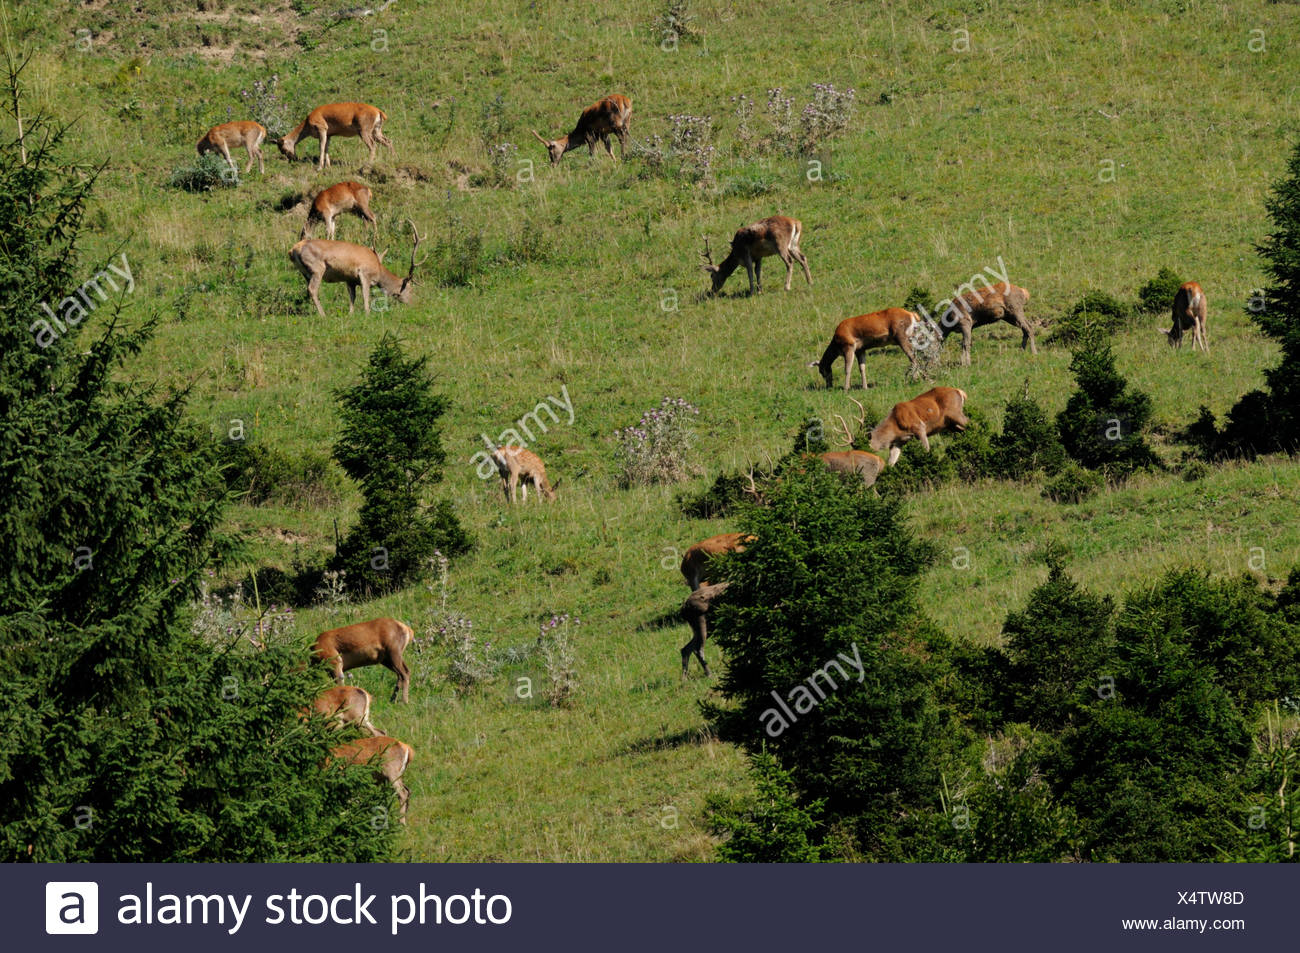 on the evening pasture Stock Photo